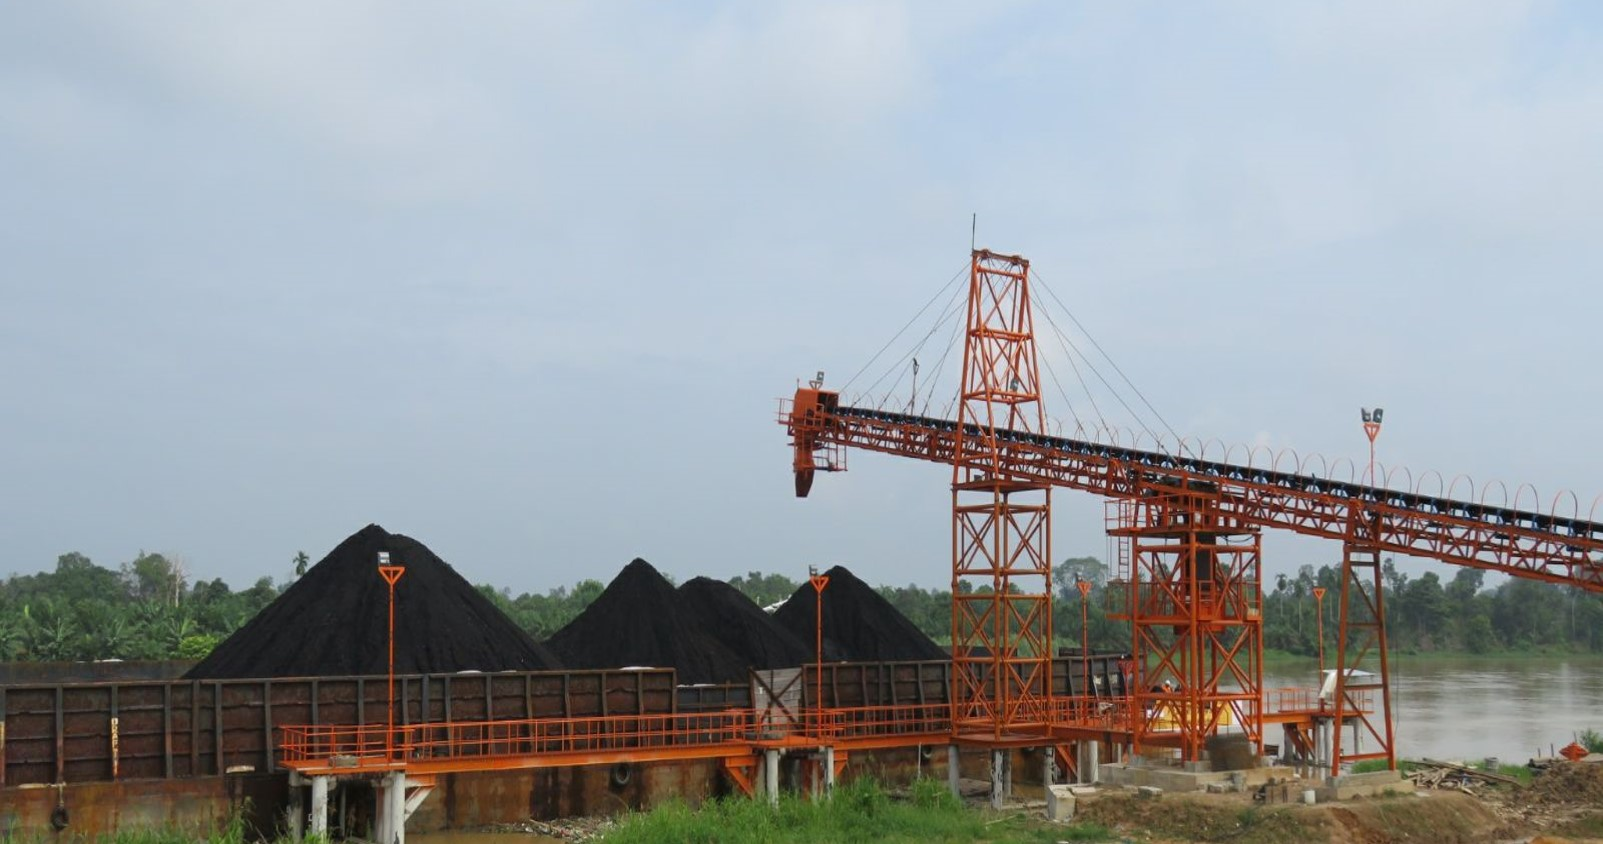 BLACKGOLD CELEBRATES COMPLETION OF ITS NEW JETTY IN RIAU PROVINCE